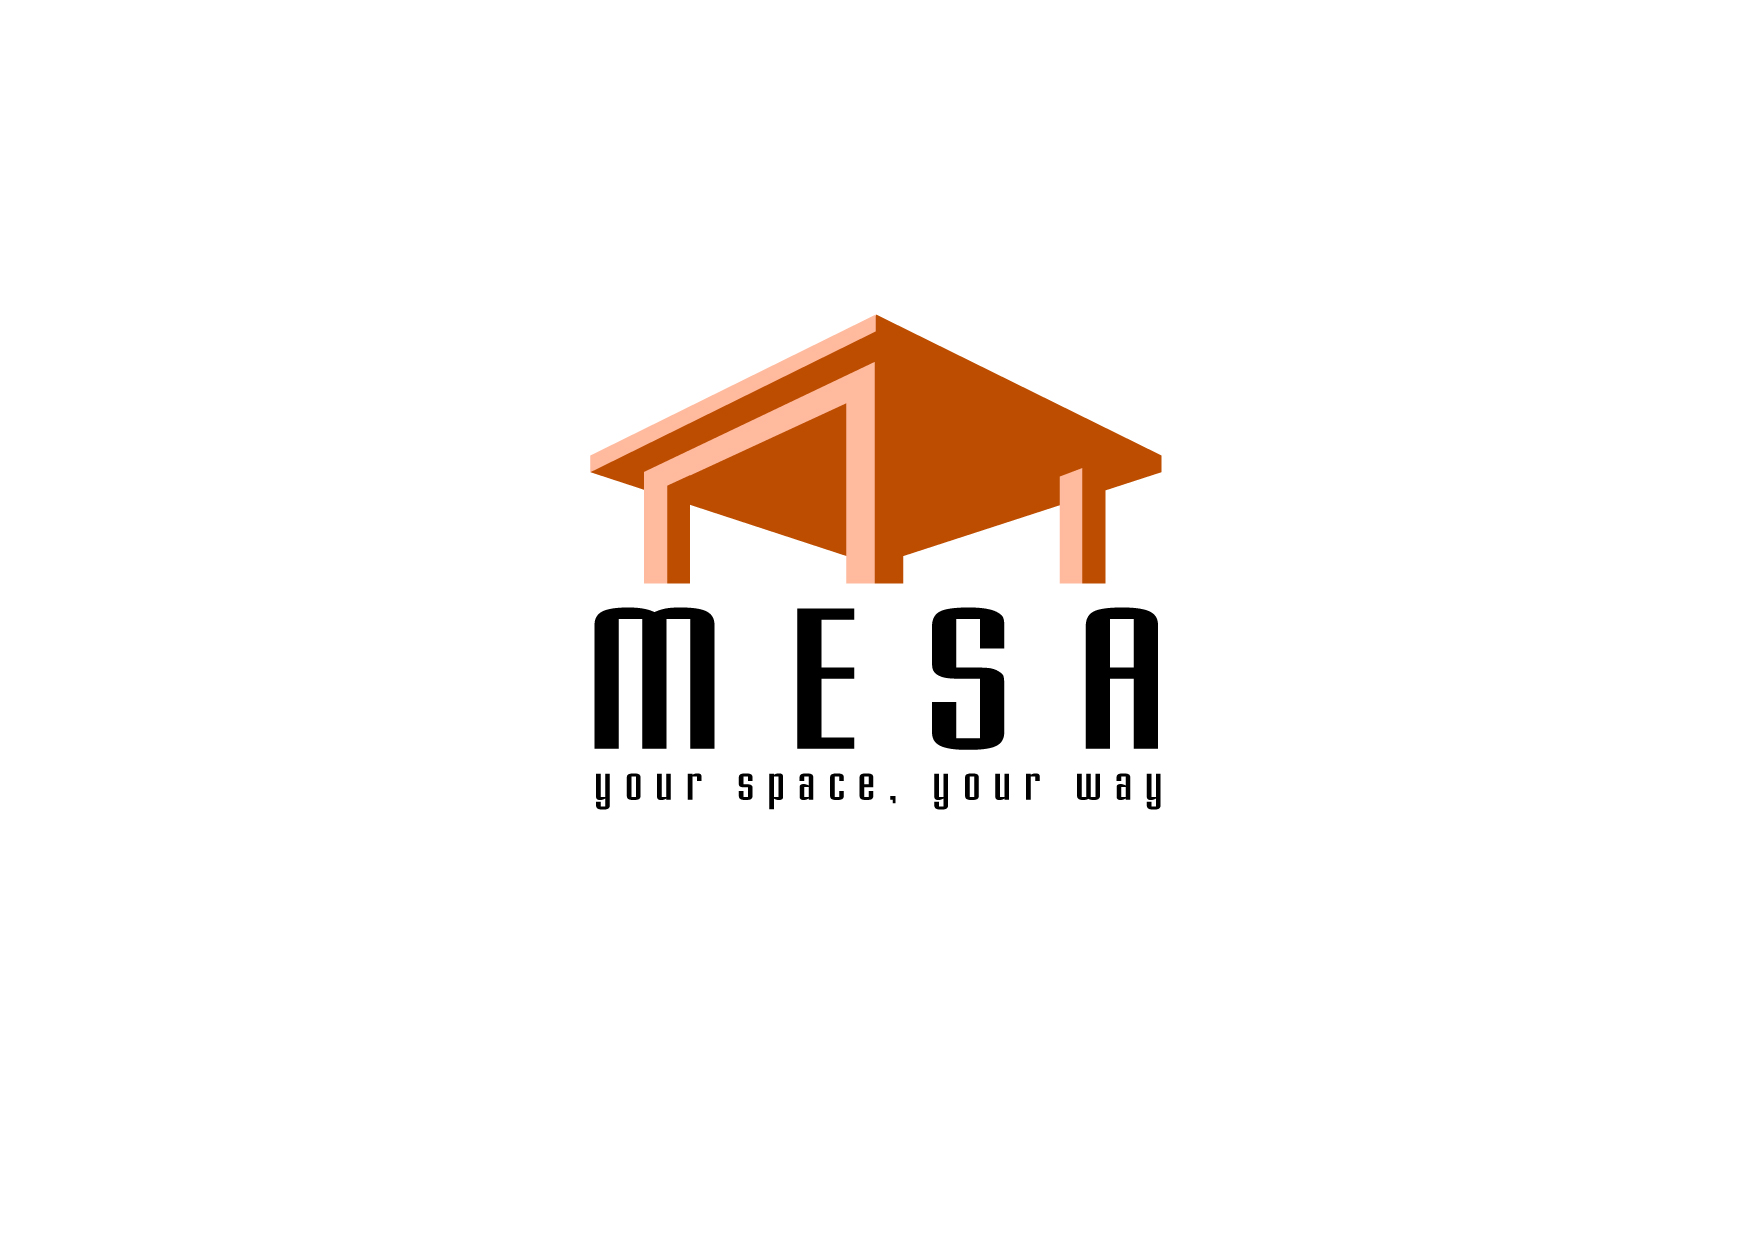 Logo Design by Wilfredo Mendoza - Entry No. 185 in the Logo Design Contest Logo Design for Mesa.